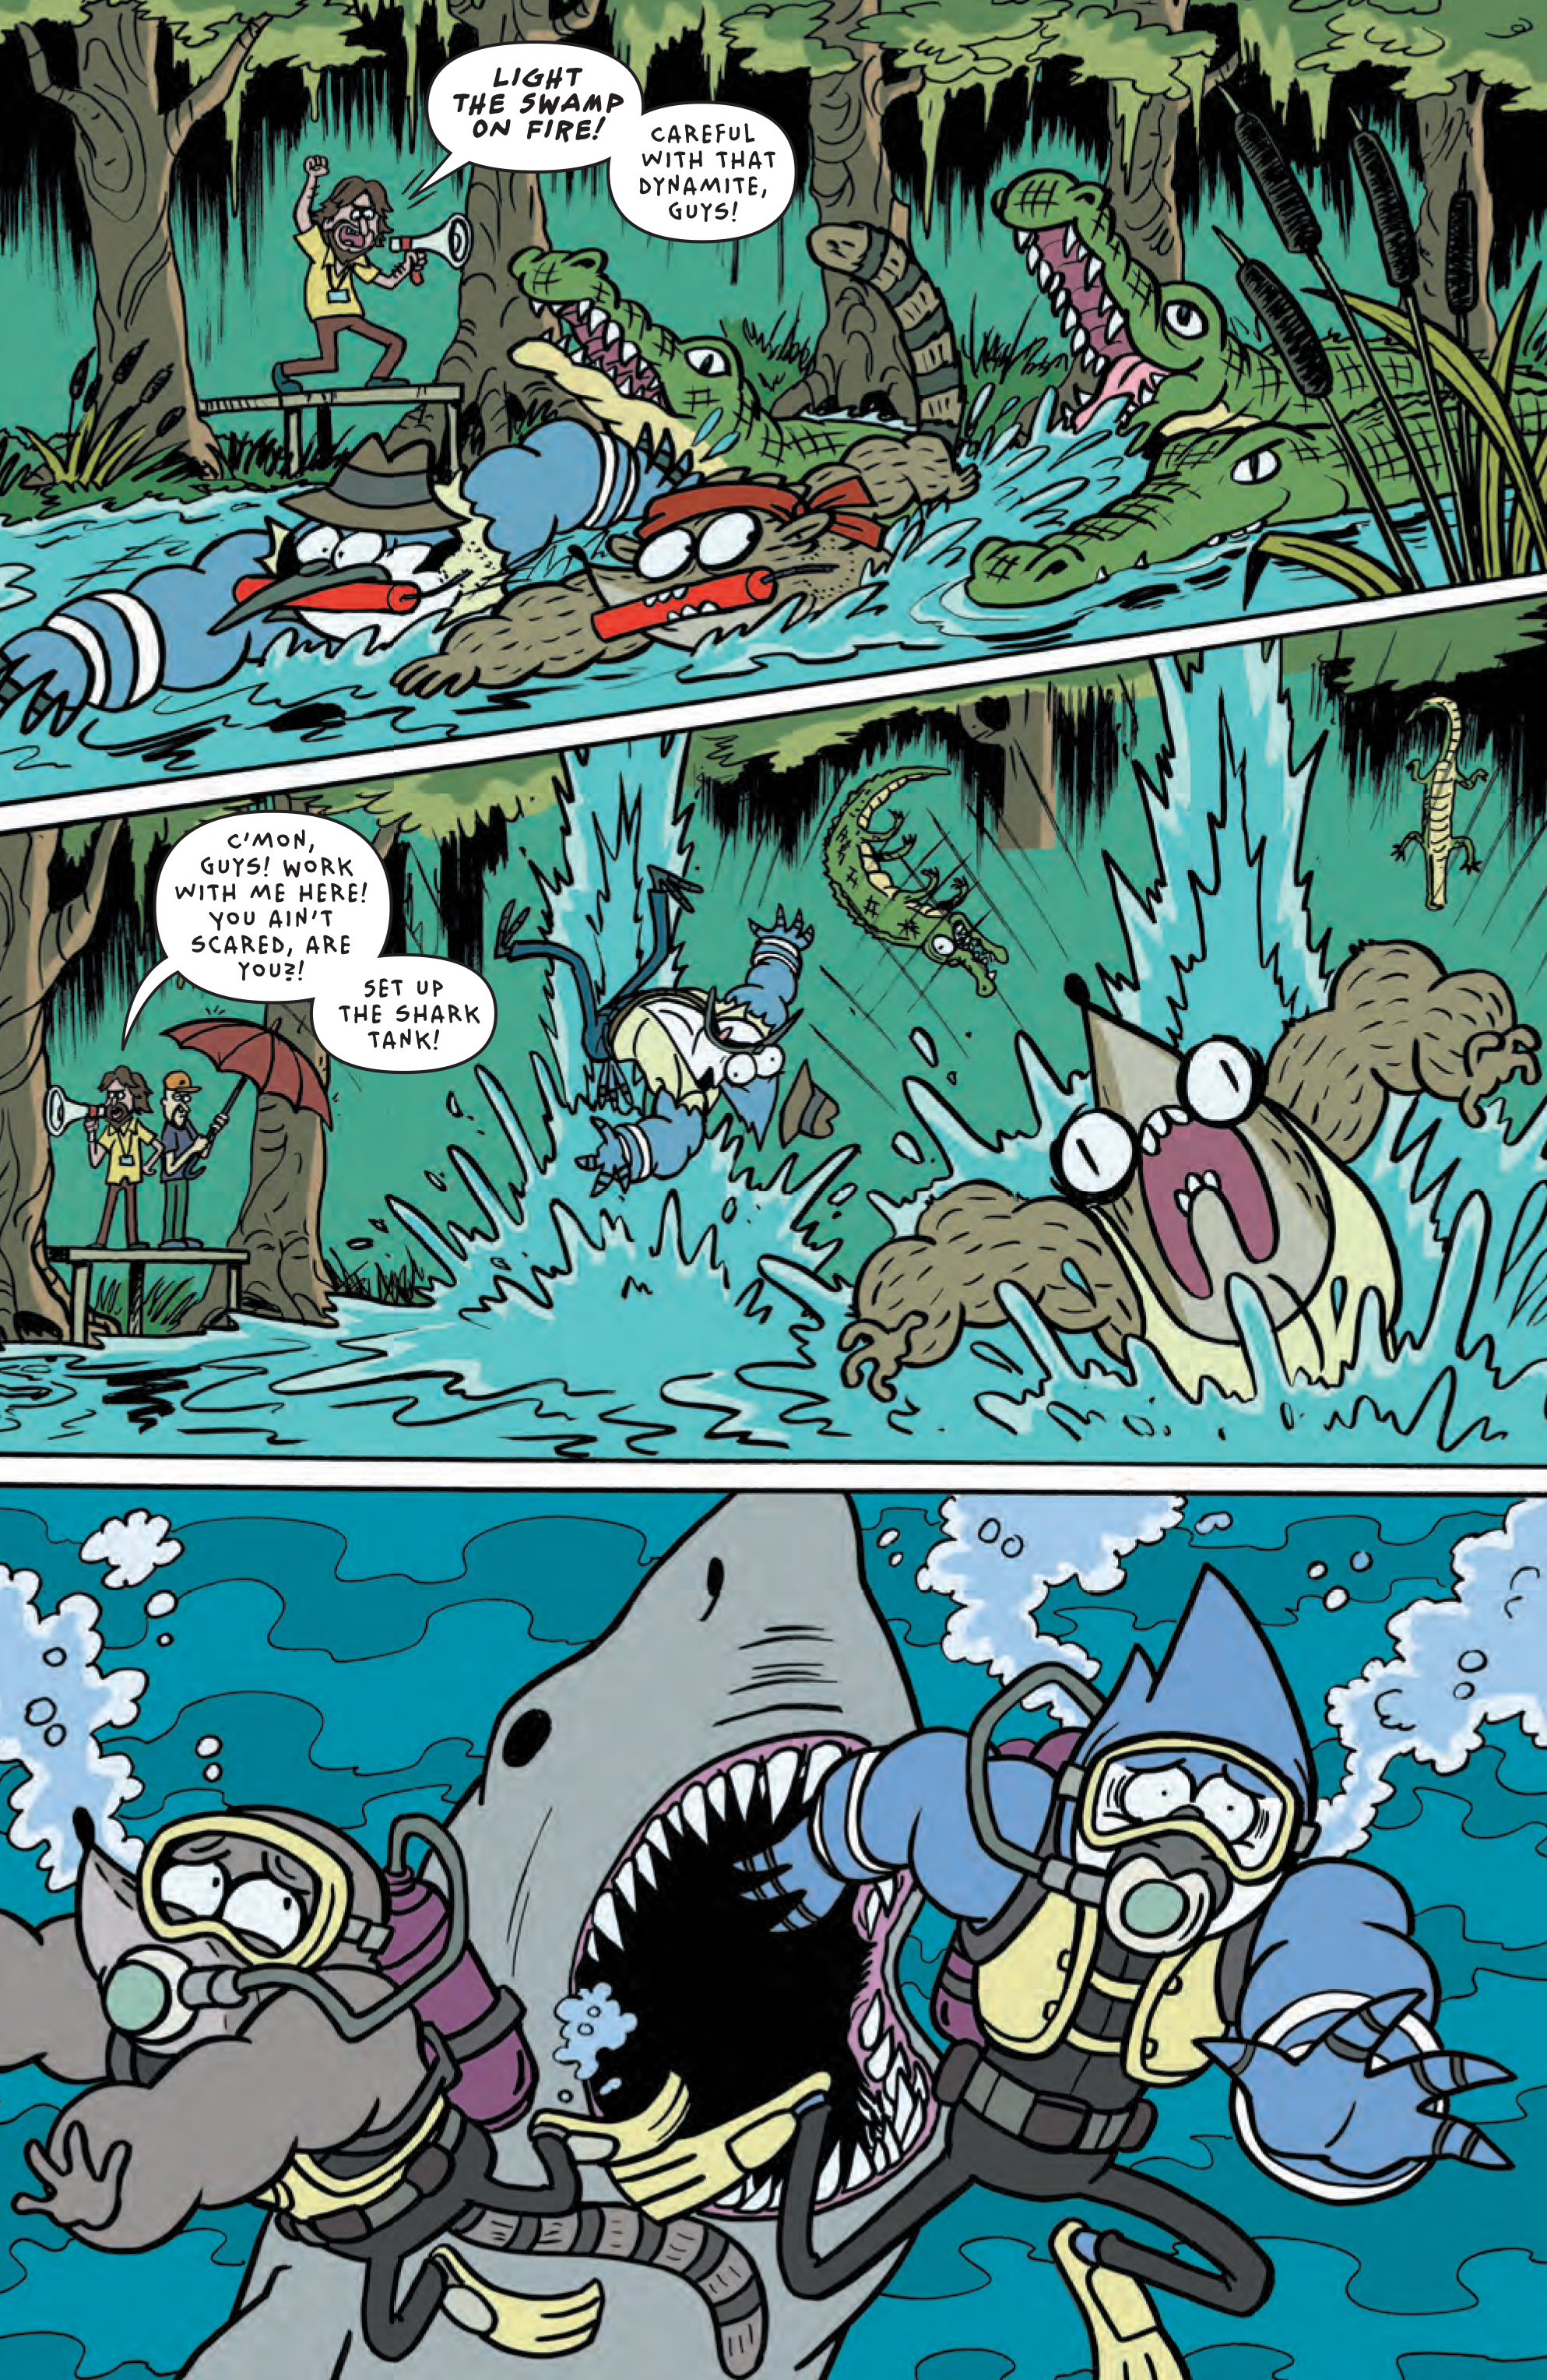 Talk this Regular show comics seems me